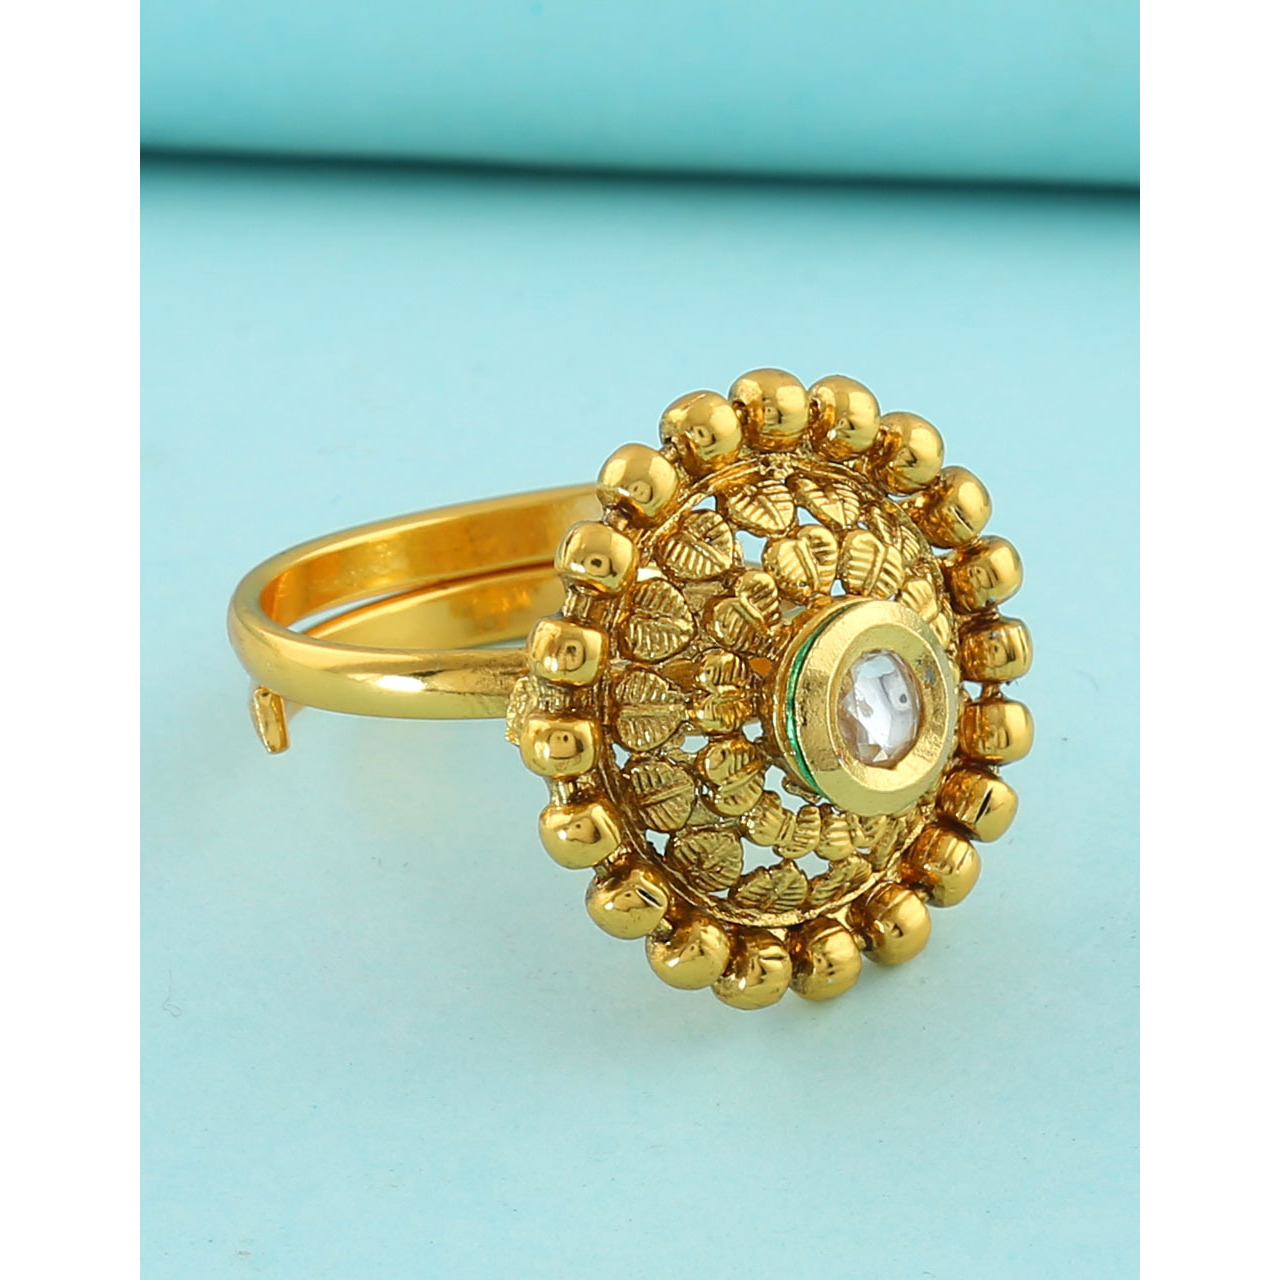 Anuradha Art Golden Finish Round Shape Studded Beads Styled Classy Traditional Finger Ring For Women/Girls